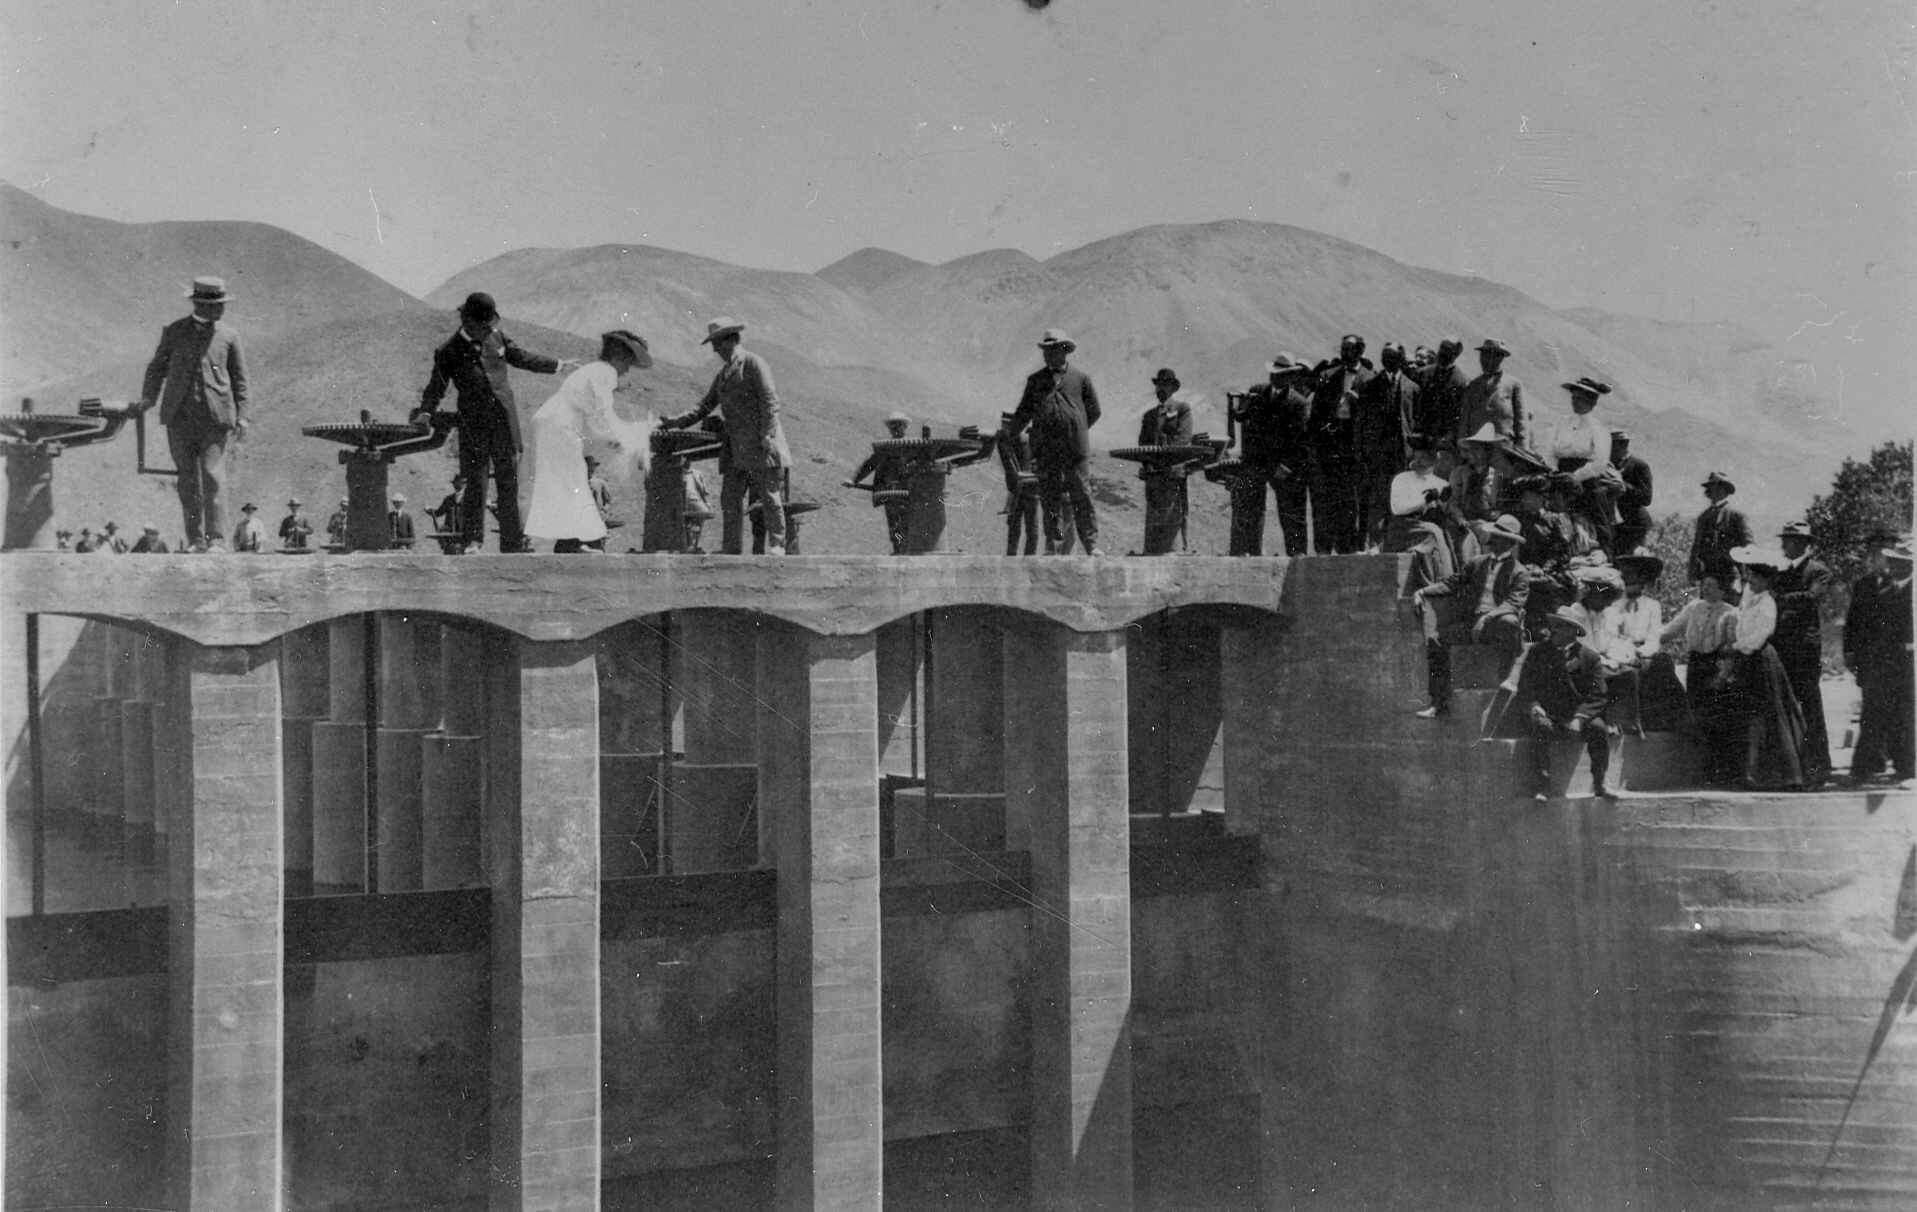 People atop the Lahontan Dam in early 1900s.